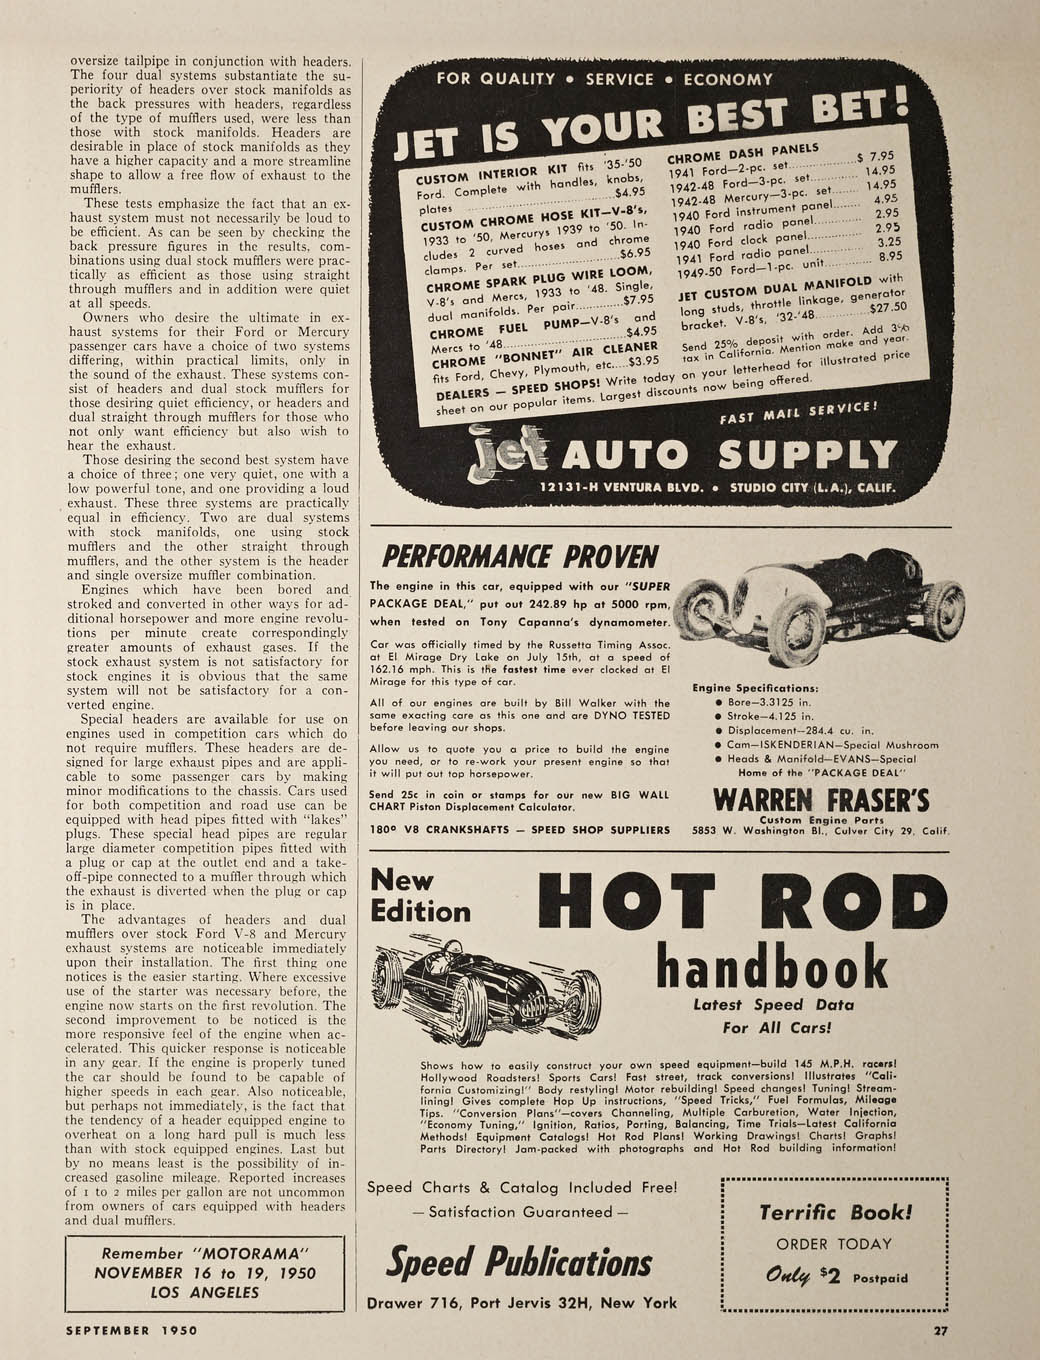 "Walker used his 'liner in this HRM ad (Sept. '50) for his engine building business. The 284.4-inch flathead, fitted with an Isky cam and Evans heads and manifolds, put out more than 242 hp. The car was ""officially timed"" at a Russetta meet at 162.16 mph, ""the fastest time ever clocked at El Mirage for this type of car."" Walker called his car ""The Torch,"" and it was driven by Guy Wilson."